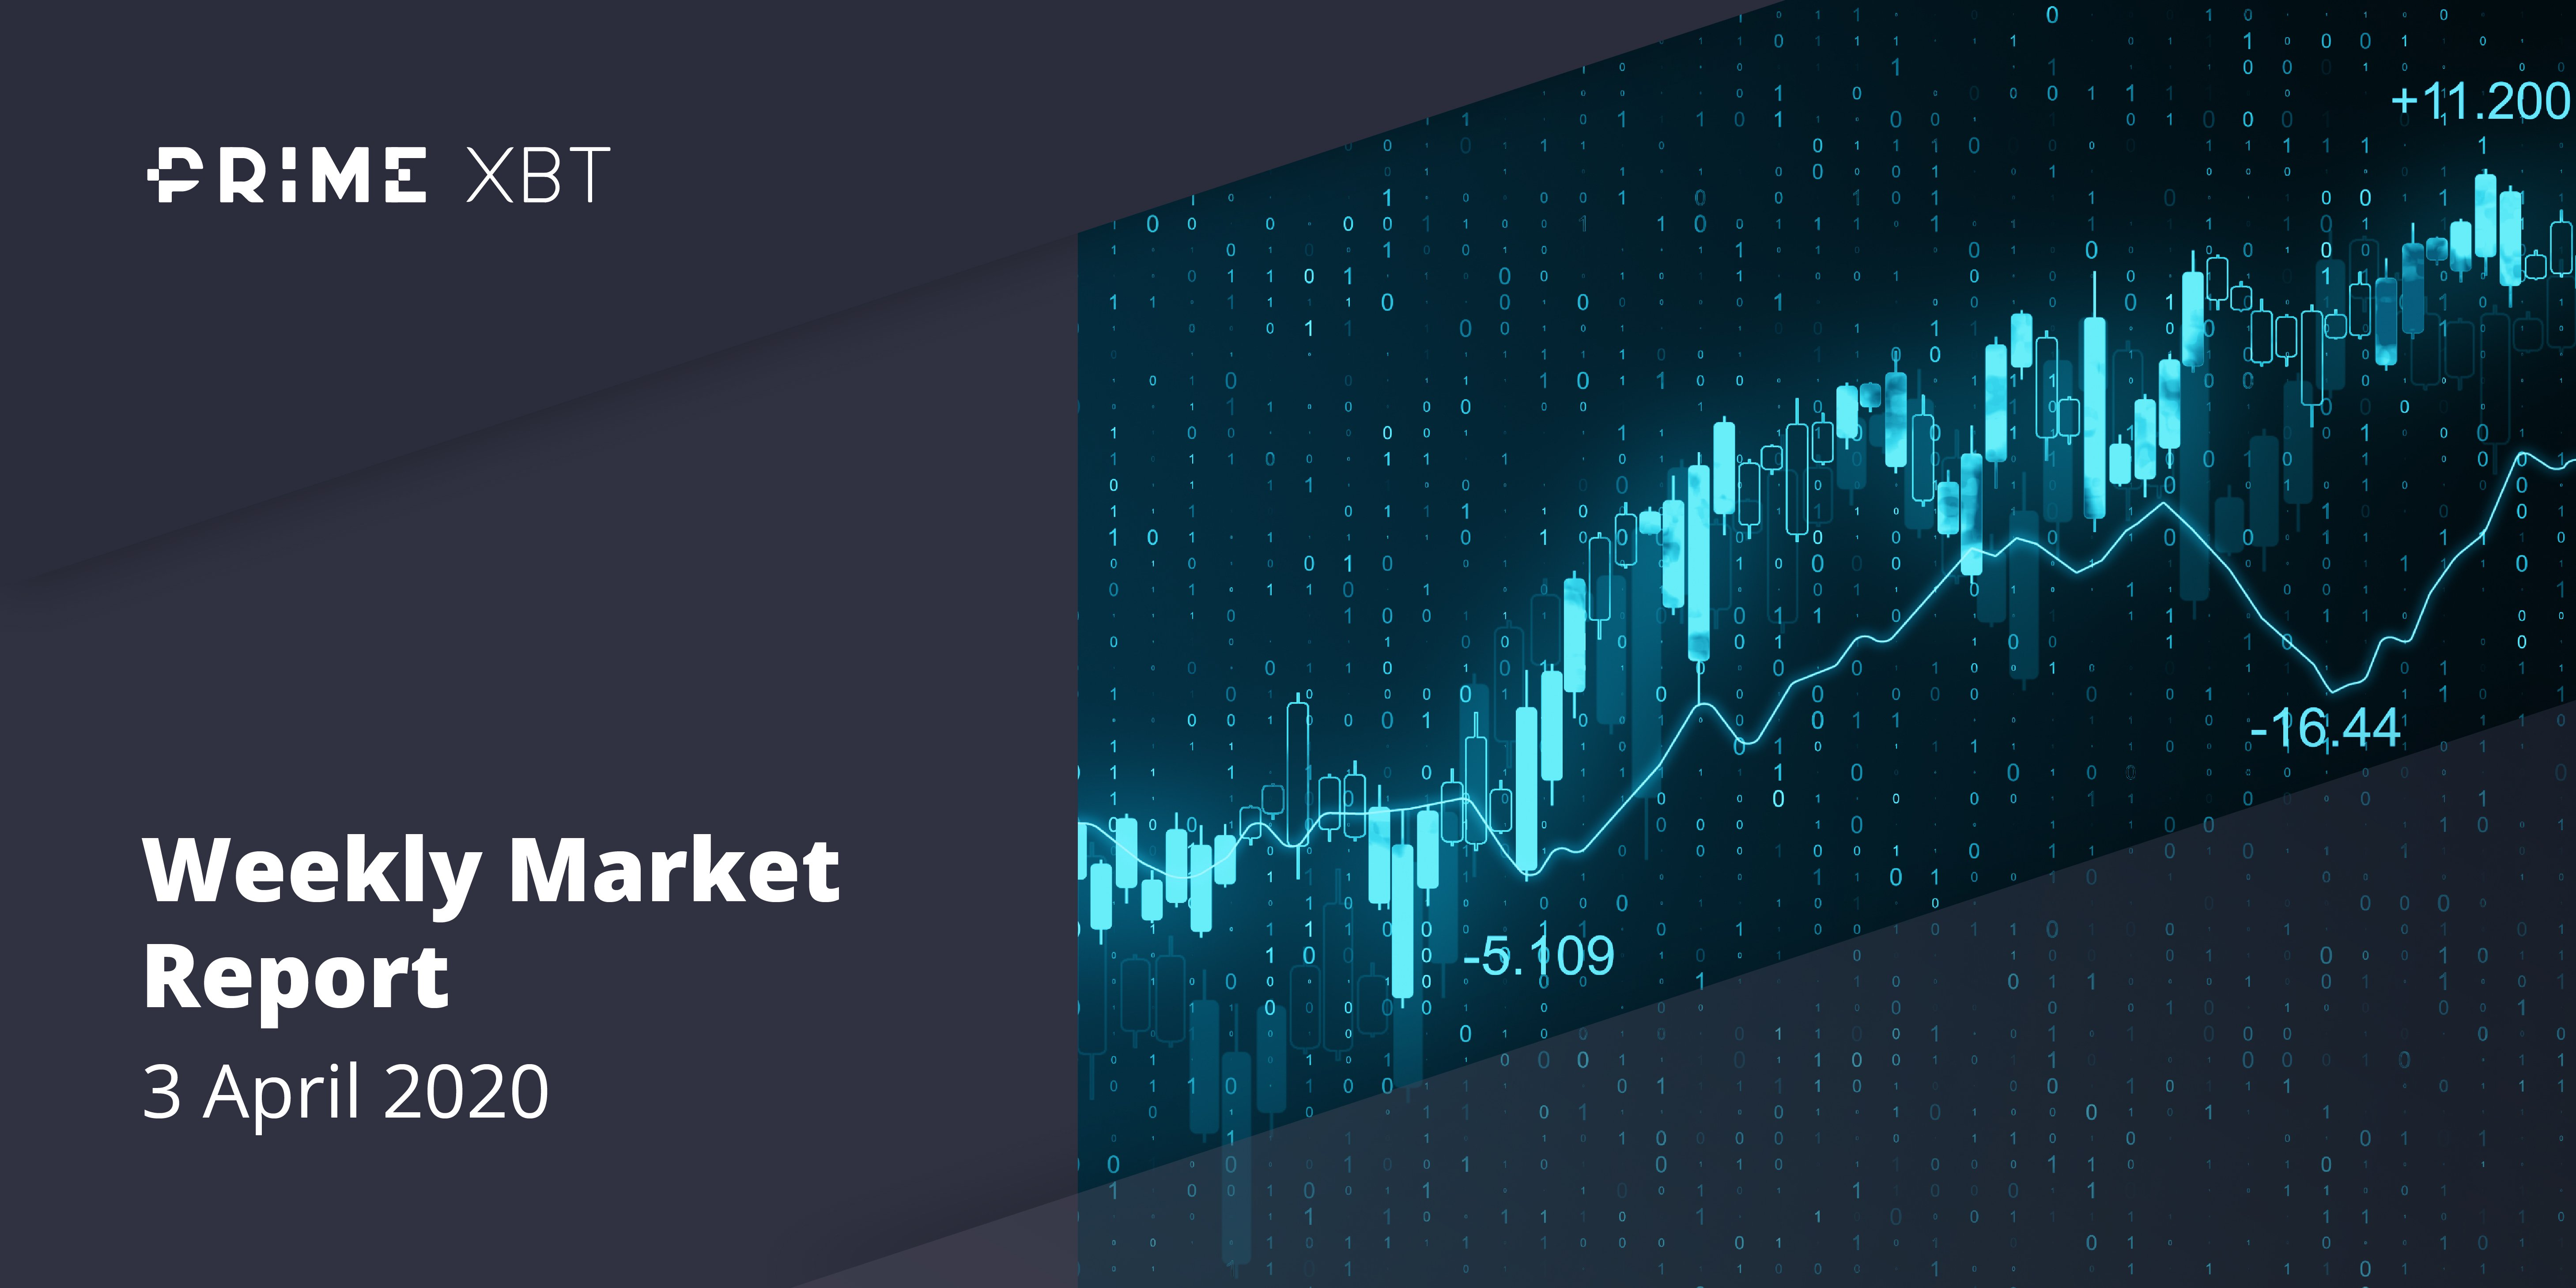 Crypto Market Report: Bitcoin Makes Gains into April But Volume Drops, Futures Markets Recovers - 2020 04 04 03.14.57